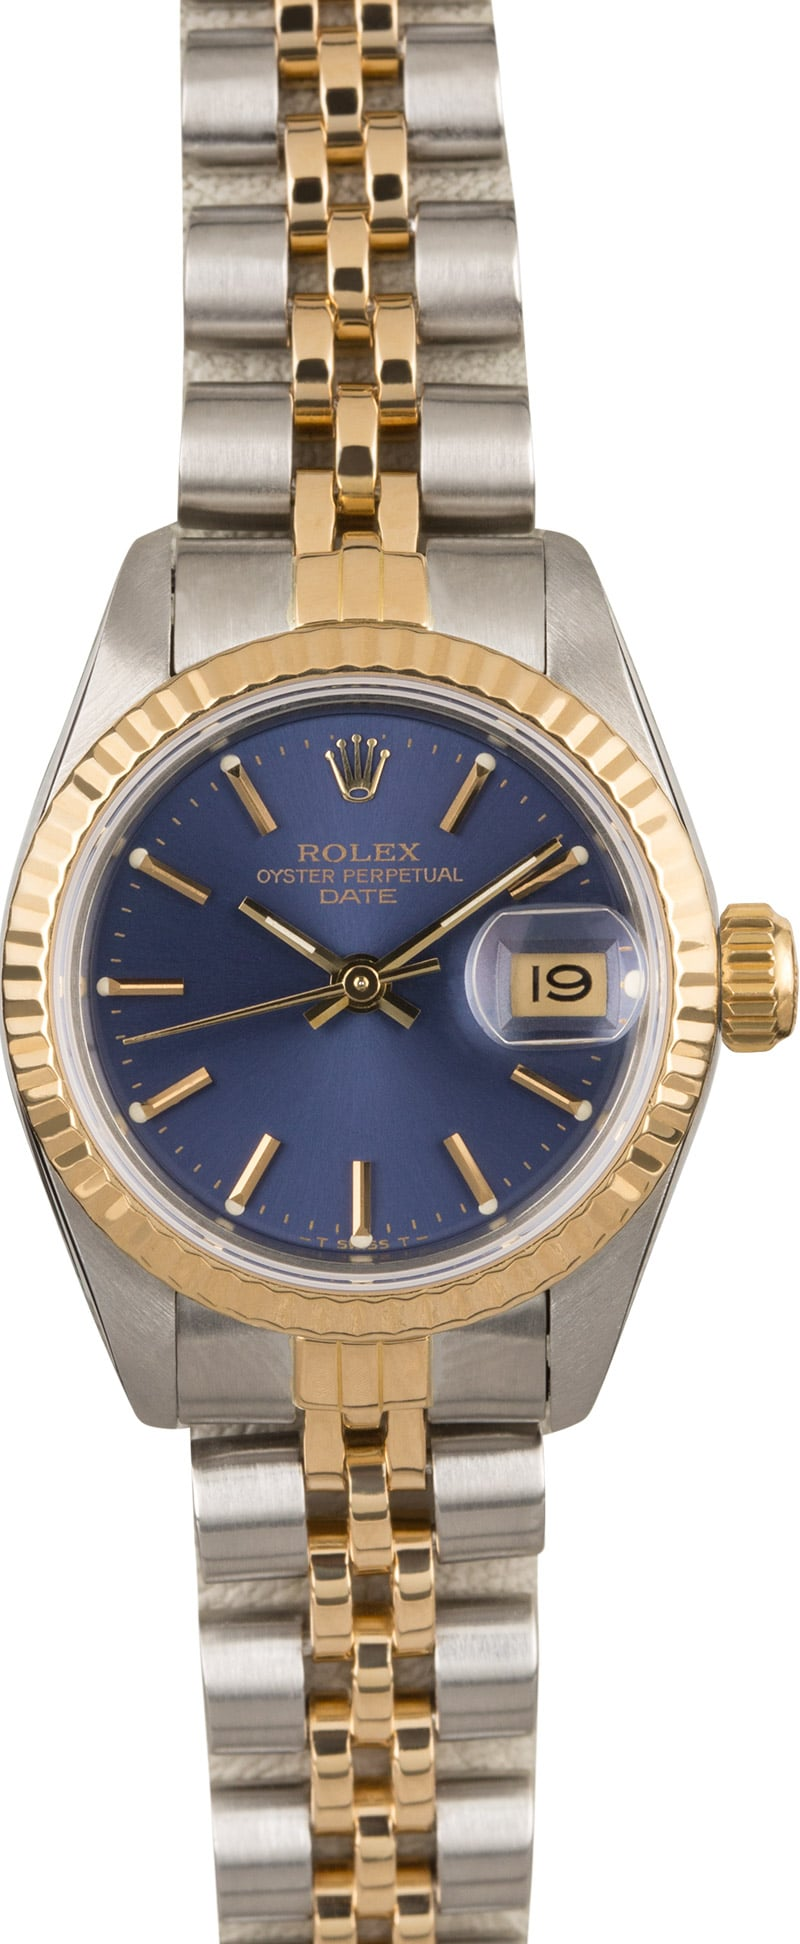 rolex lady datejust 69173 two tone jubilee band with blue dial. Black Bedroom Furniture Sets. Home Design Ideas